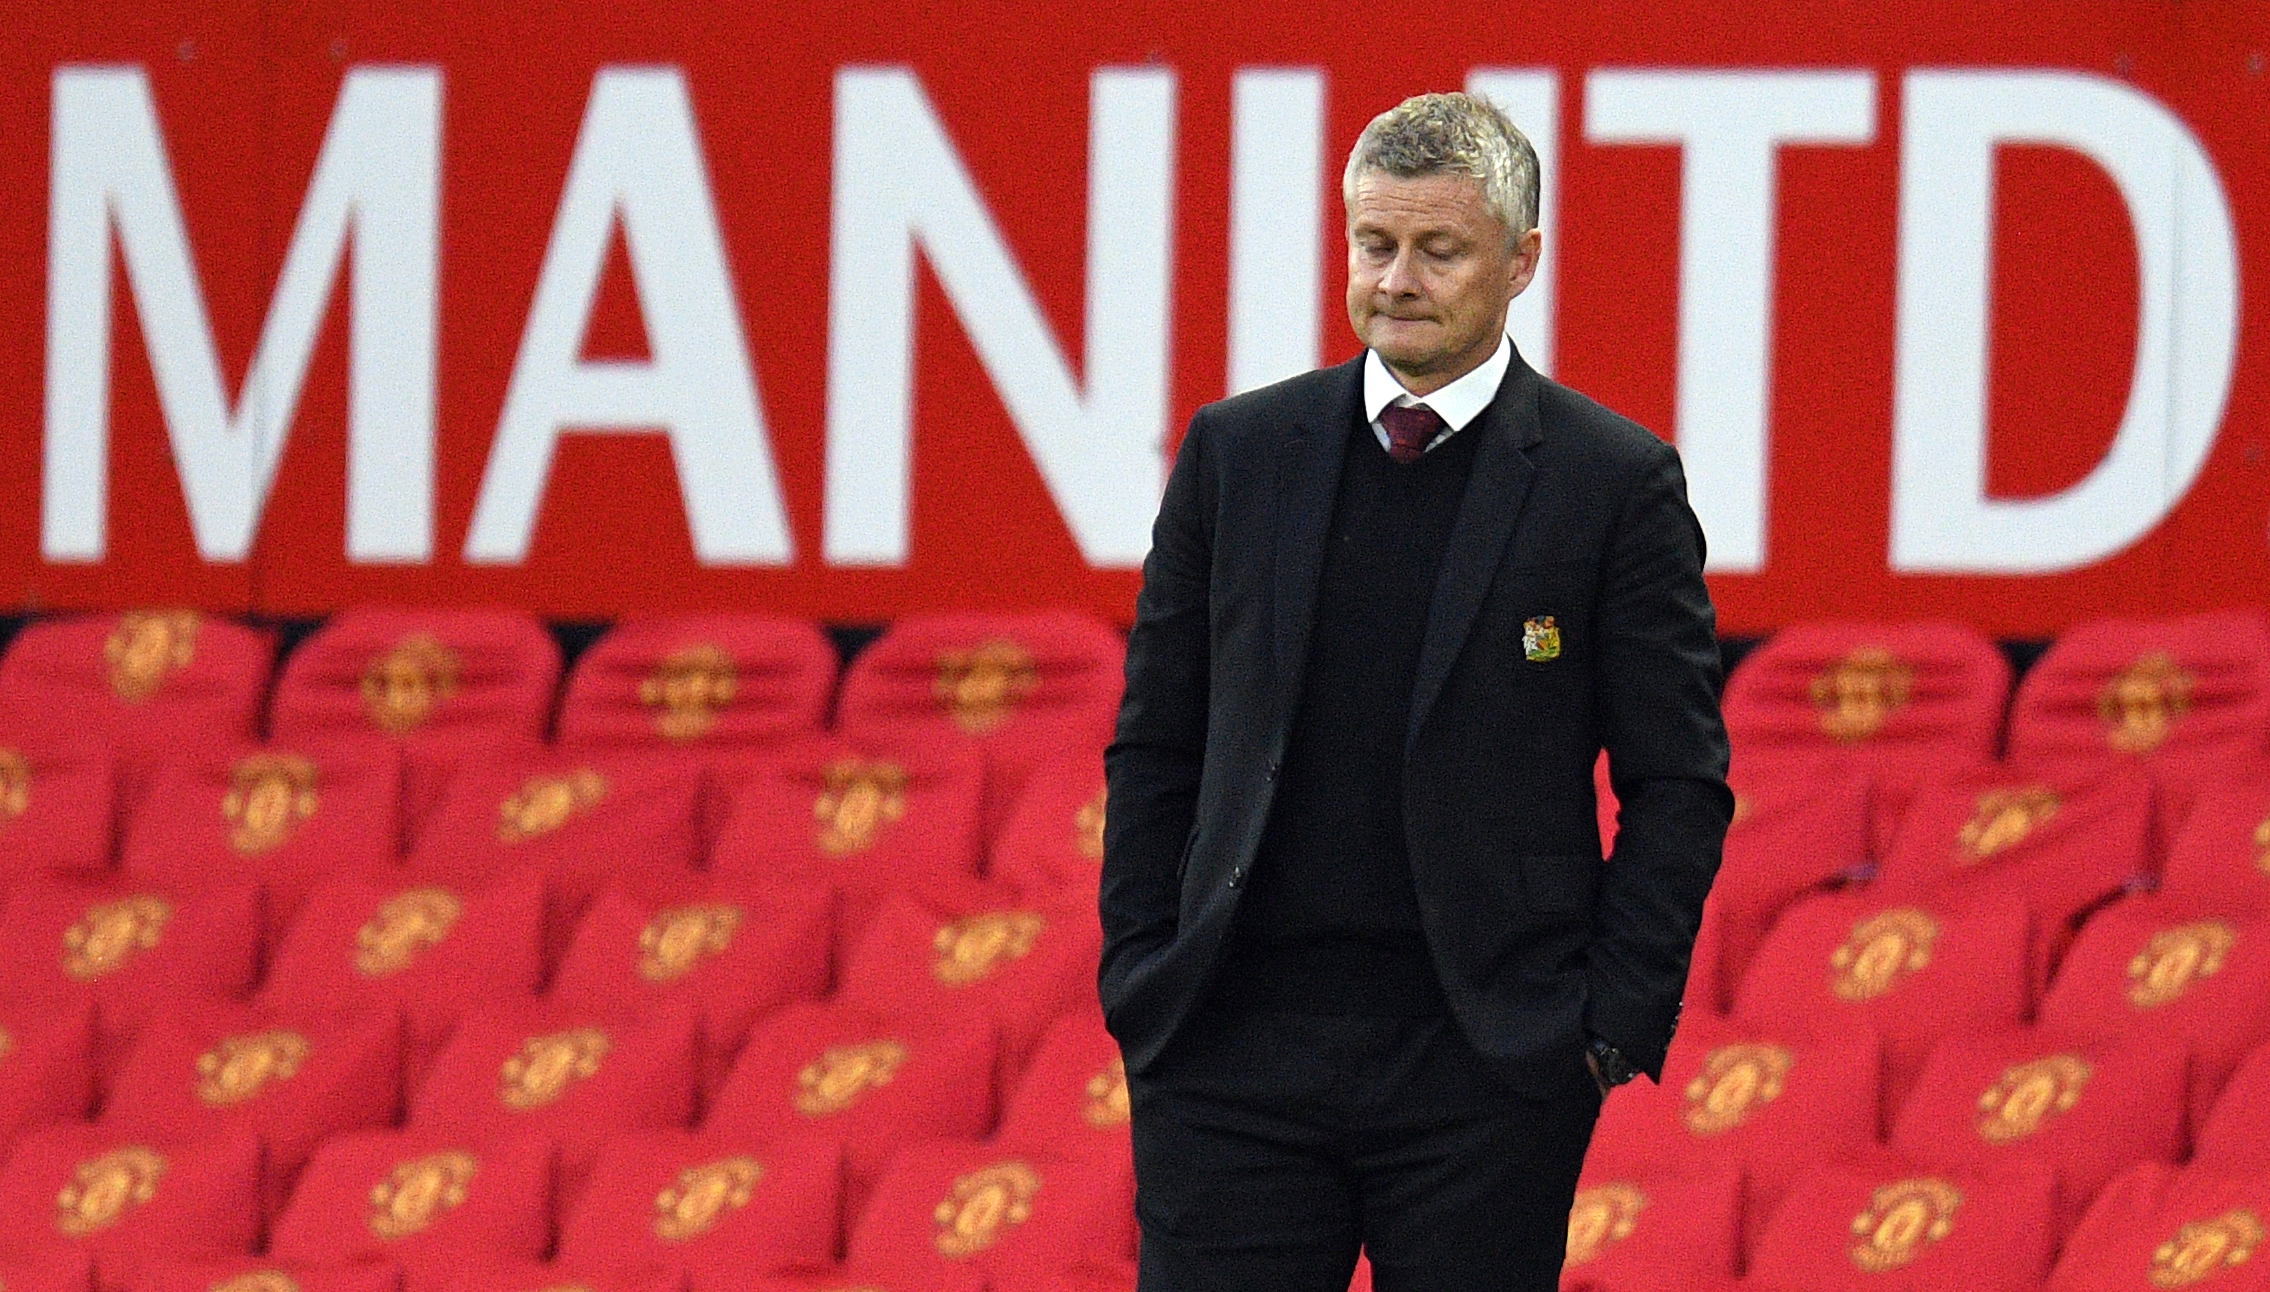 Manchester United's Norwegian manager Ole Gunnar Solskjaer looks on from the sidelines during the English Premier League football match between Manchester United and Tottenham Hotspur at Old Trafford